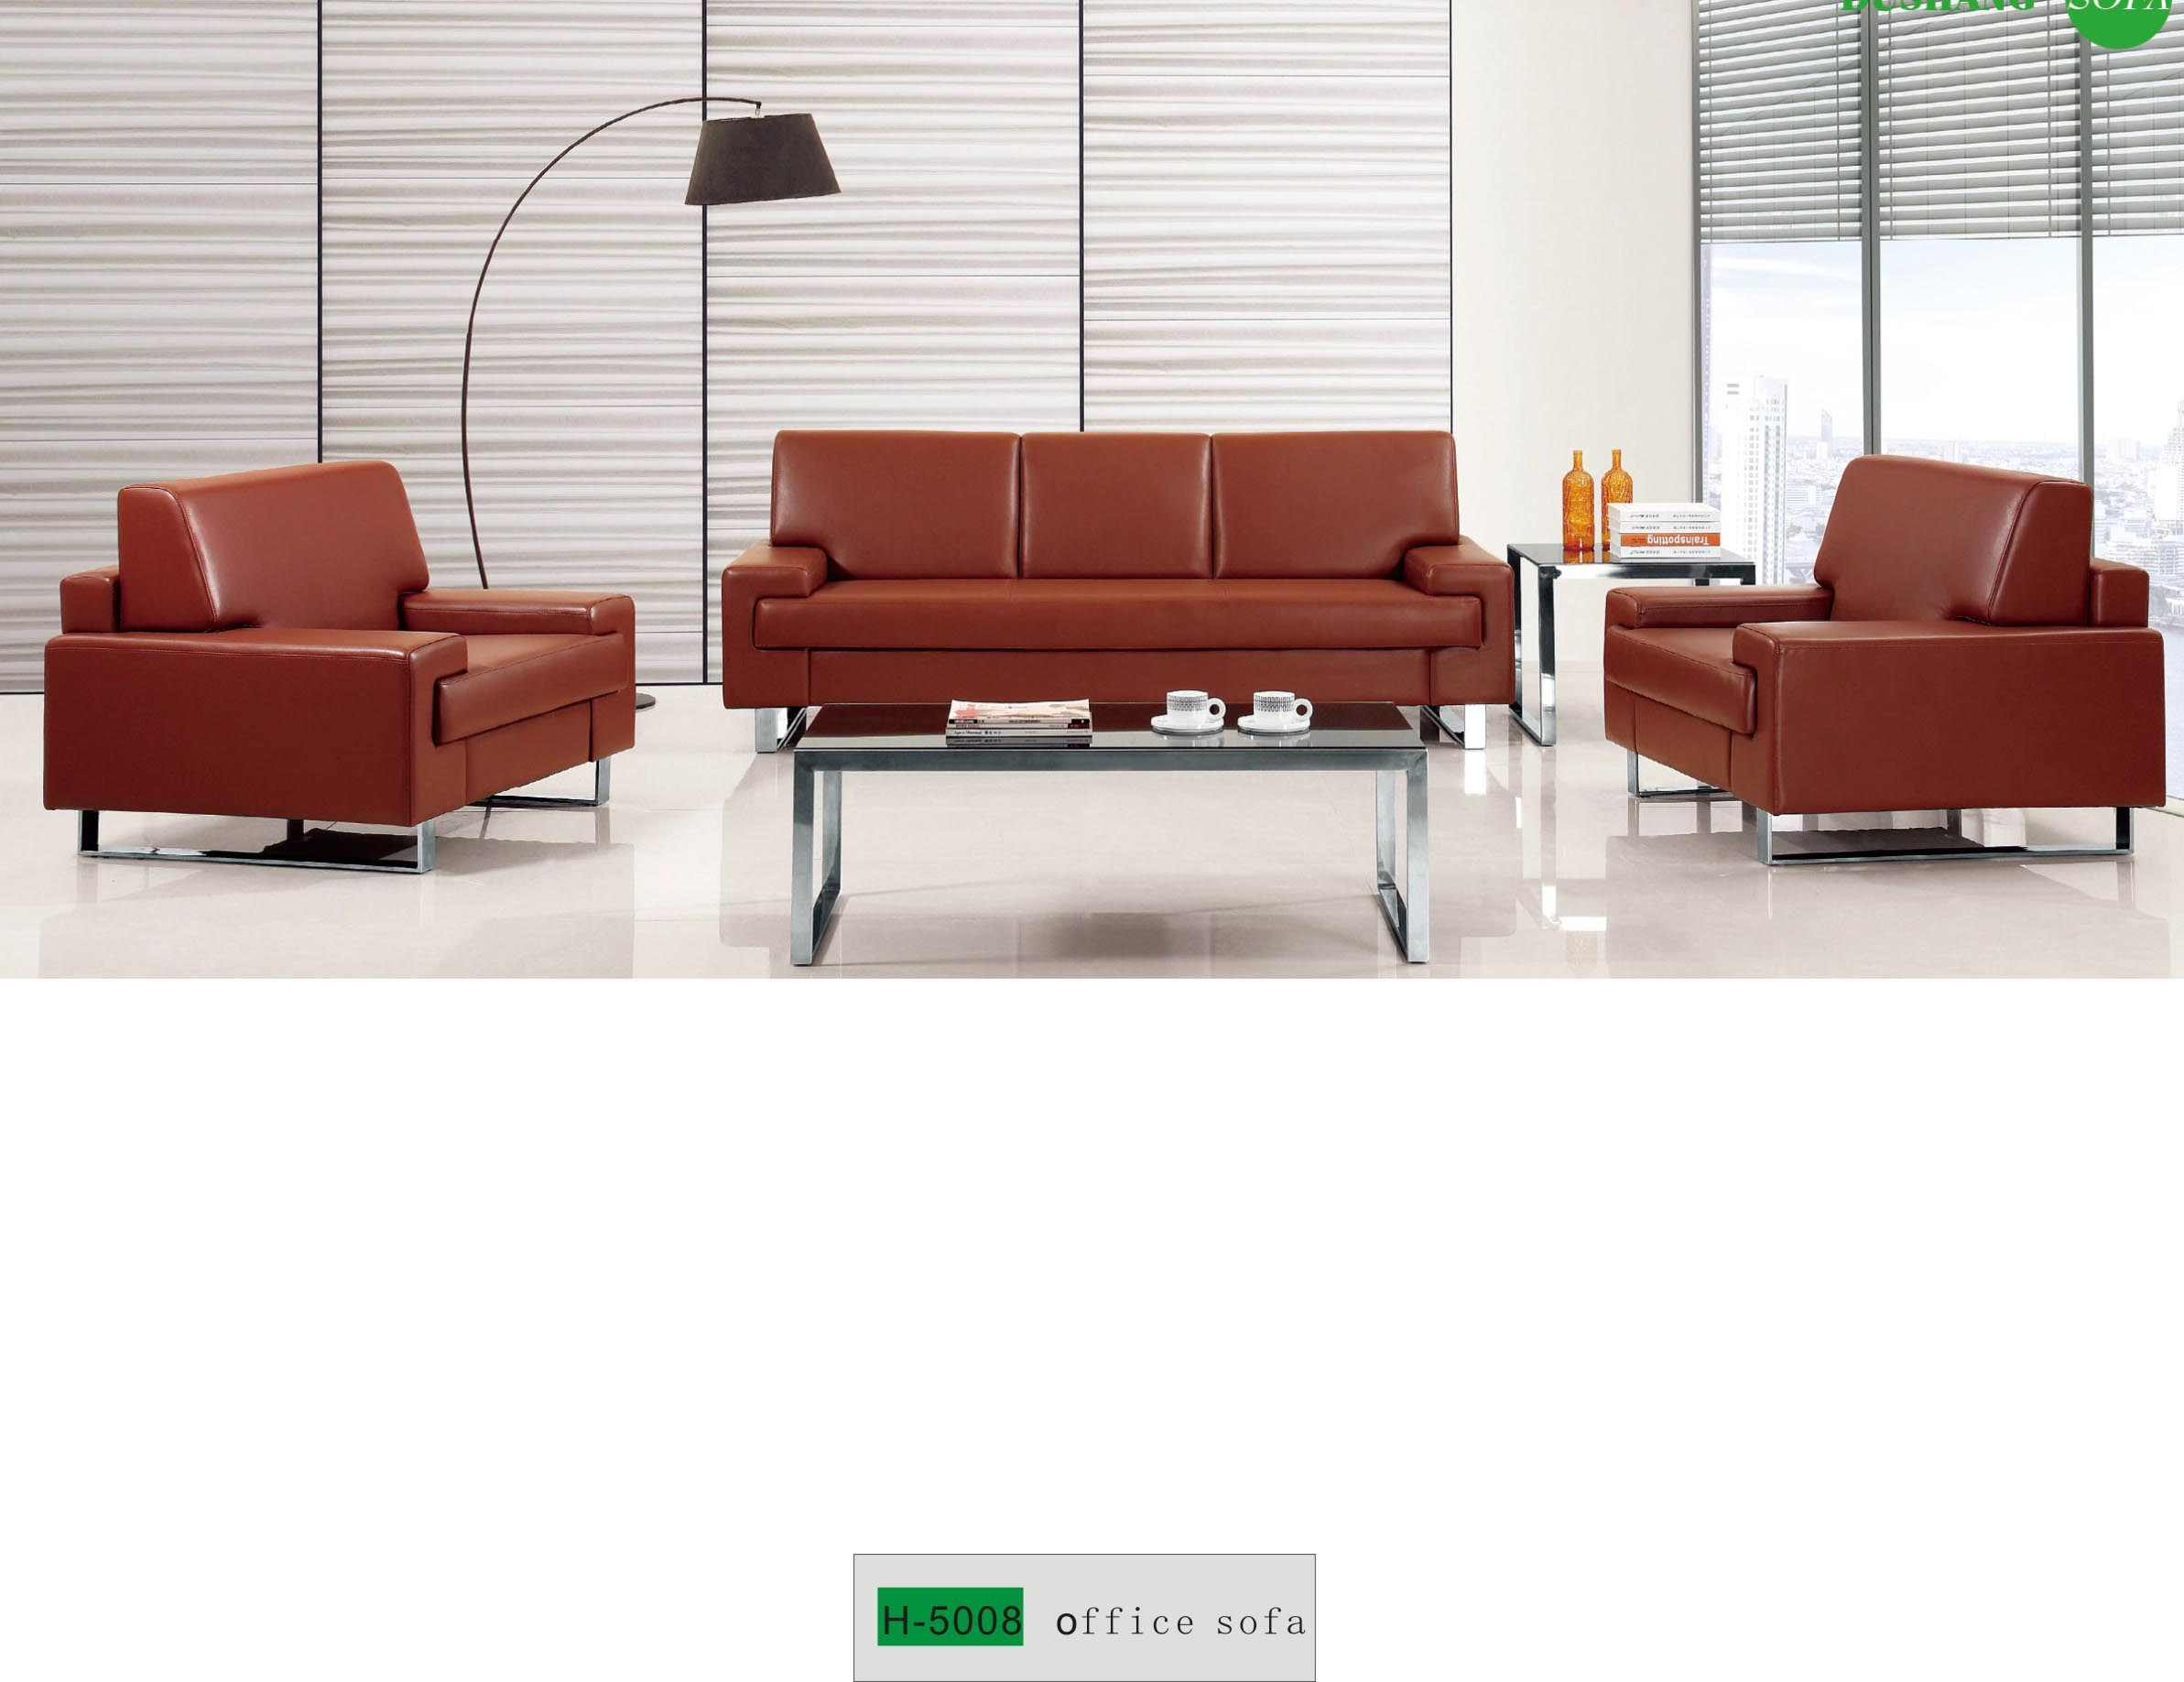 brown leather office sofa H-5008 - Buy cheap office sofa, single ...